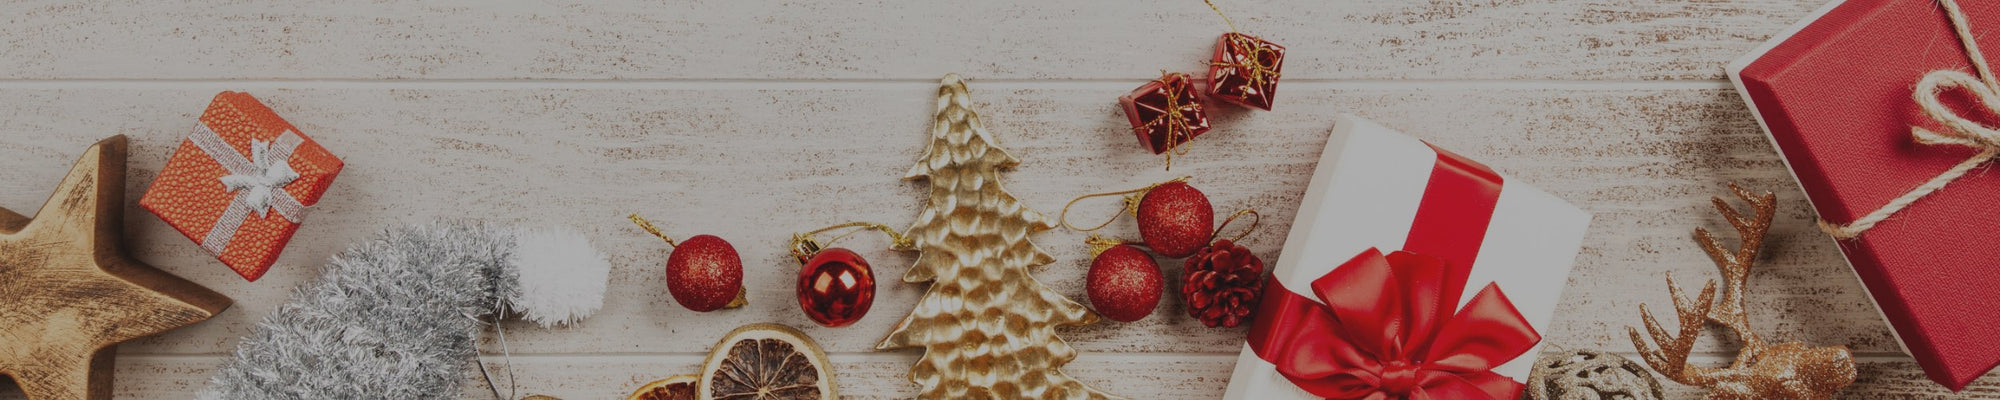 5 Wholesale Christmas Kitchen Decor Pieces to Help Your Customers Serve Holiday Magic